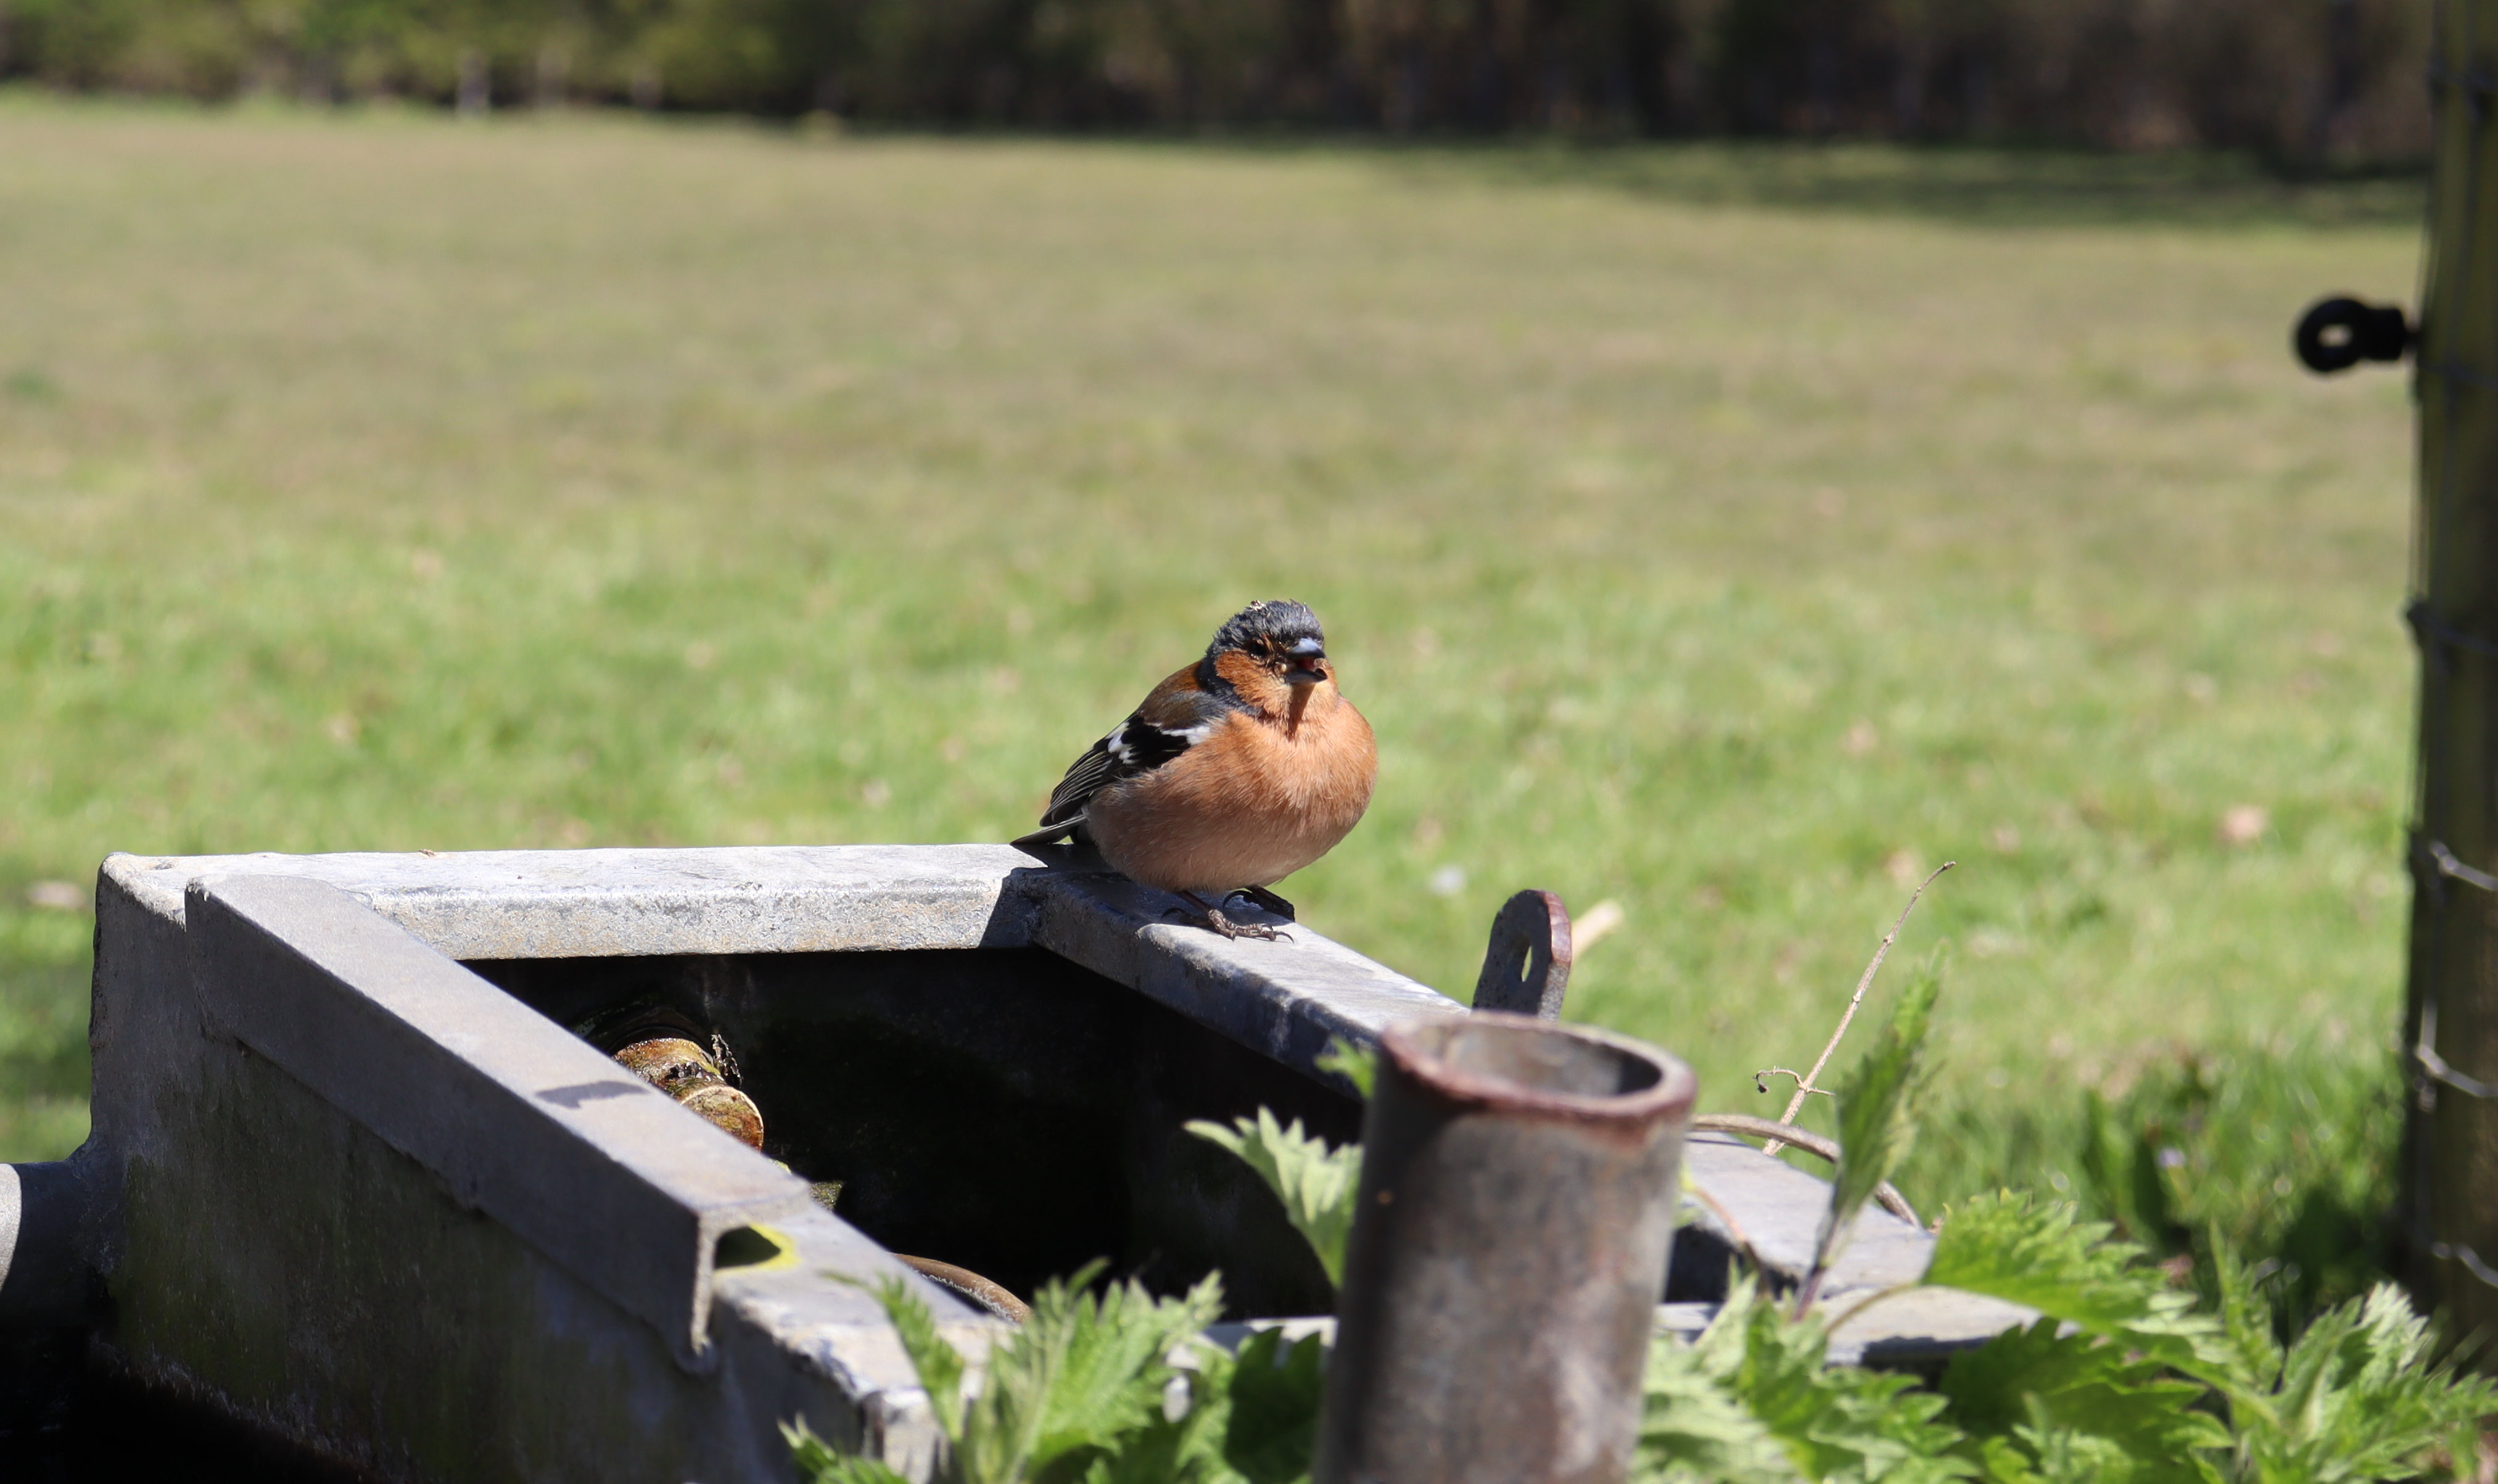 A chaffinch sat on a metal trough with a field in the background.